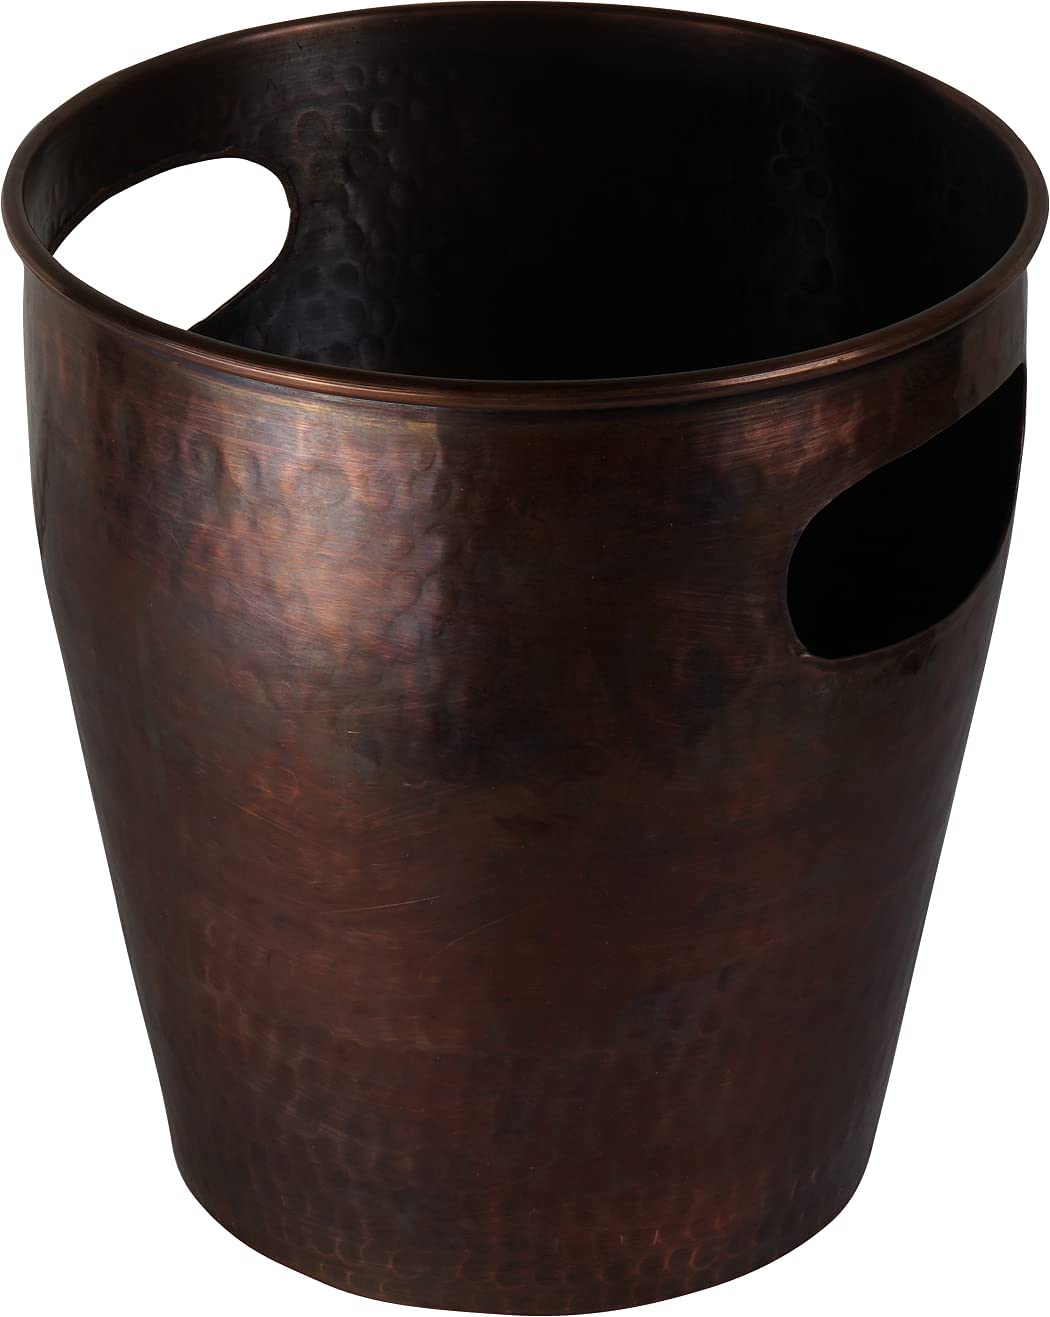 Copper Ice Bucket Beverage Bar Ranking TOP19 All items in the store Tub